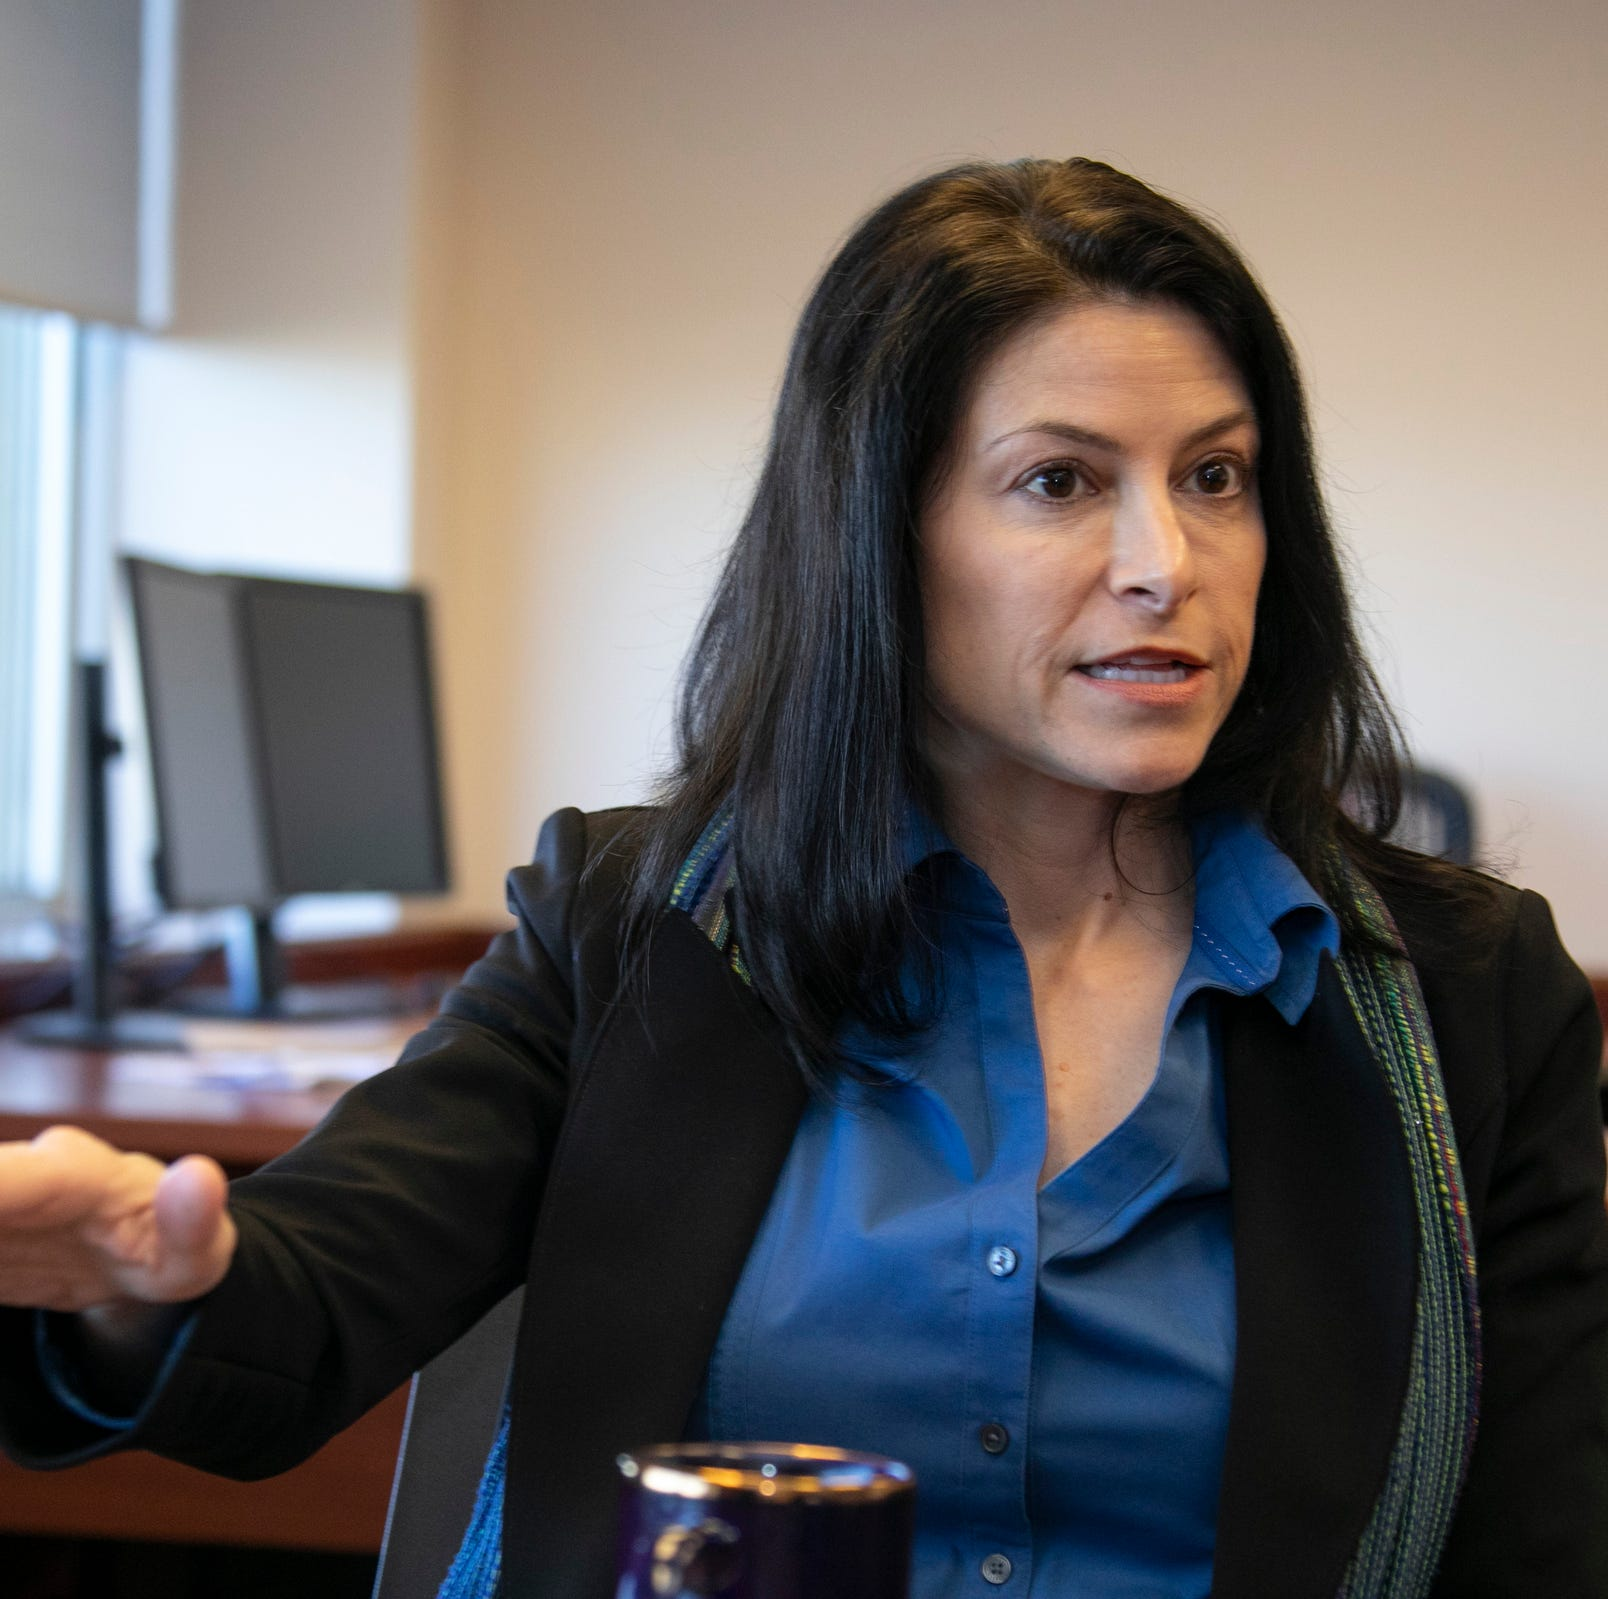 Michigan Attorney General Dana Nessel talks to the press Friday, Jan. 4, 2019 at her office in Lansing.